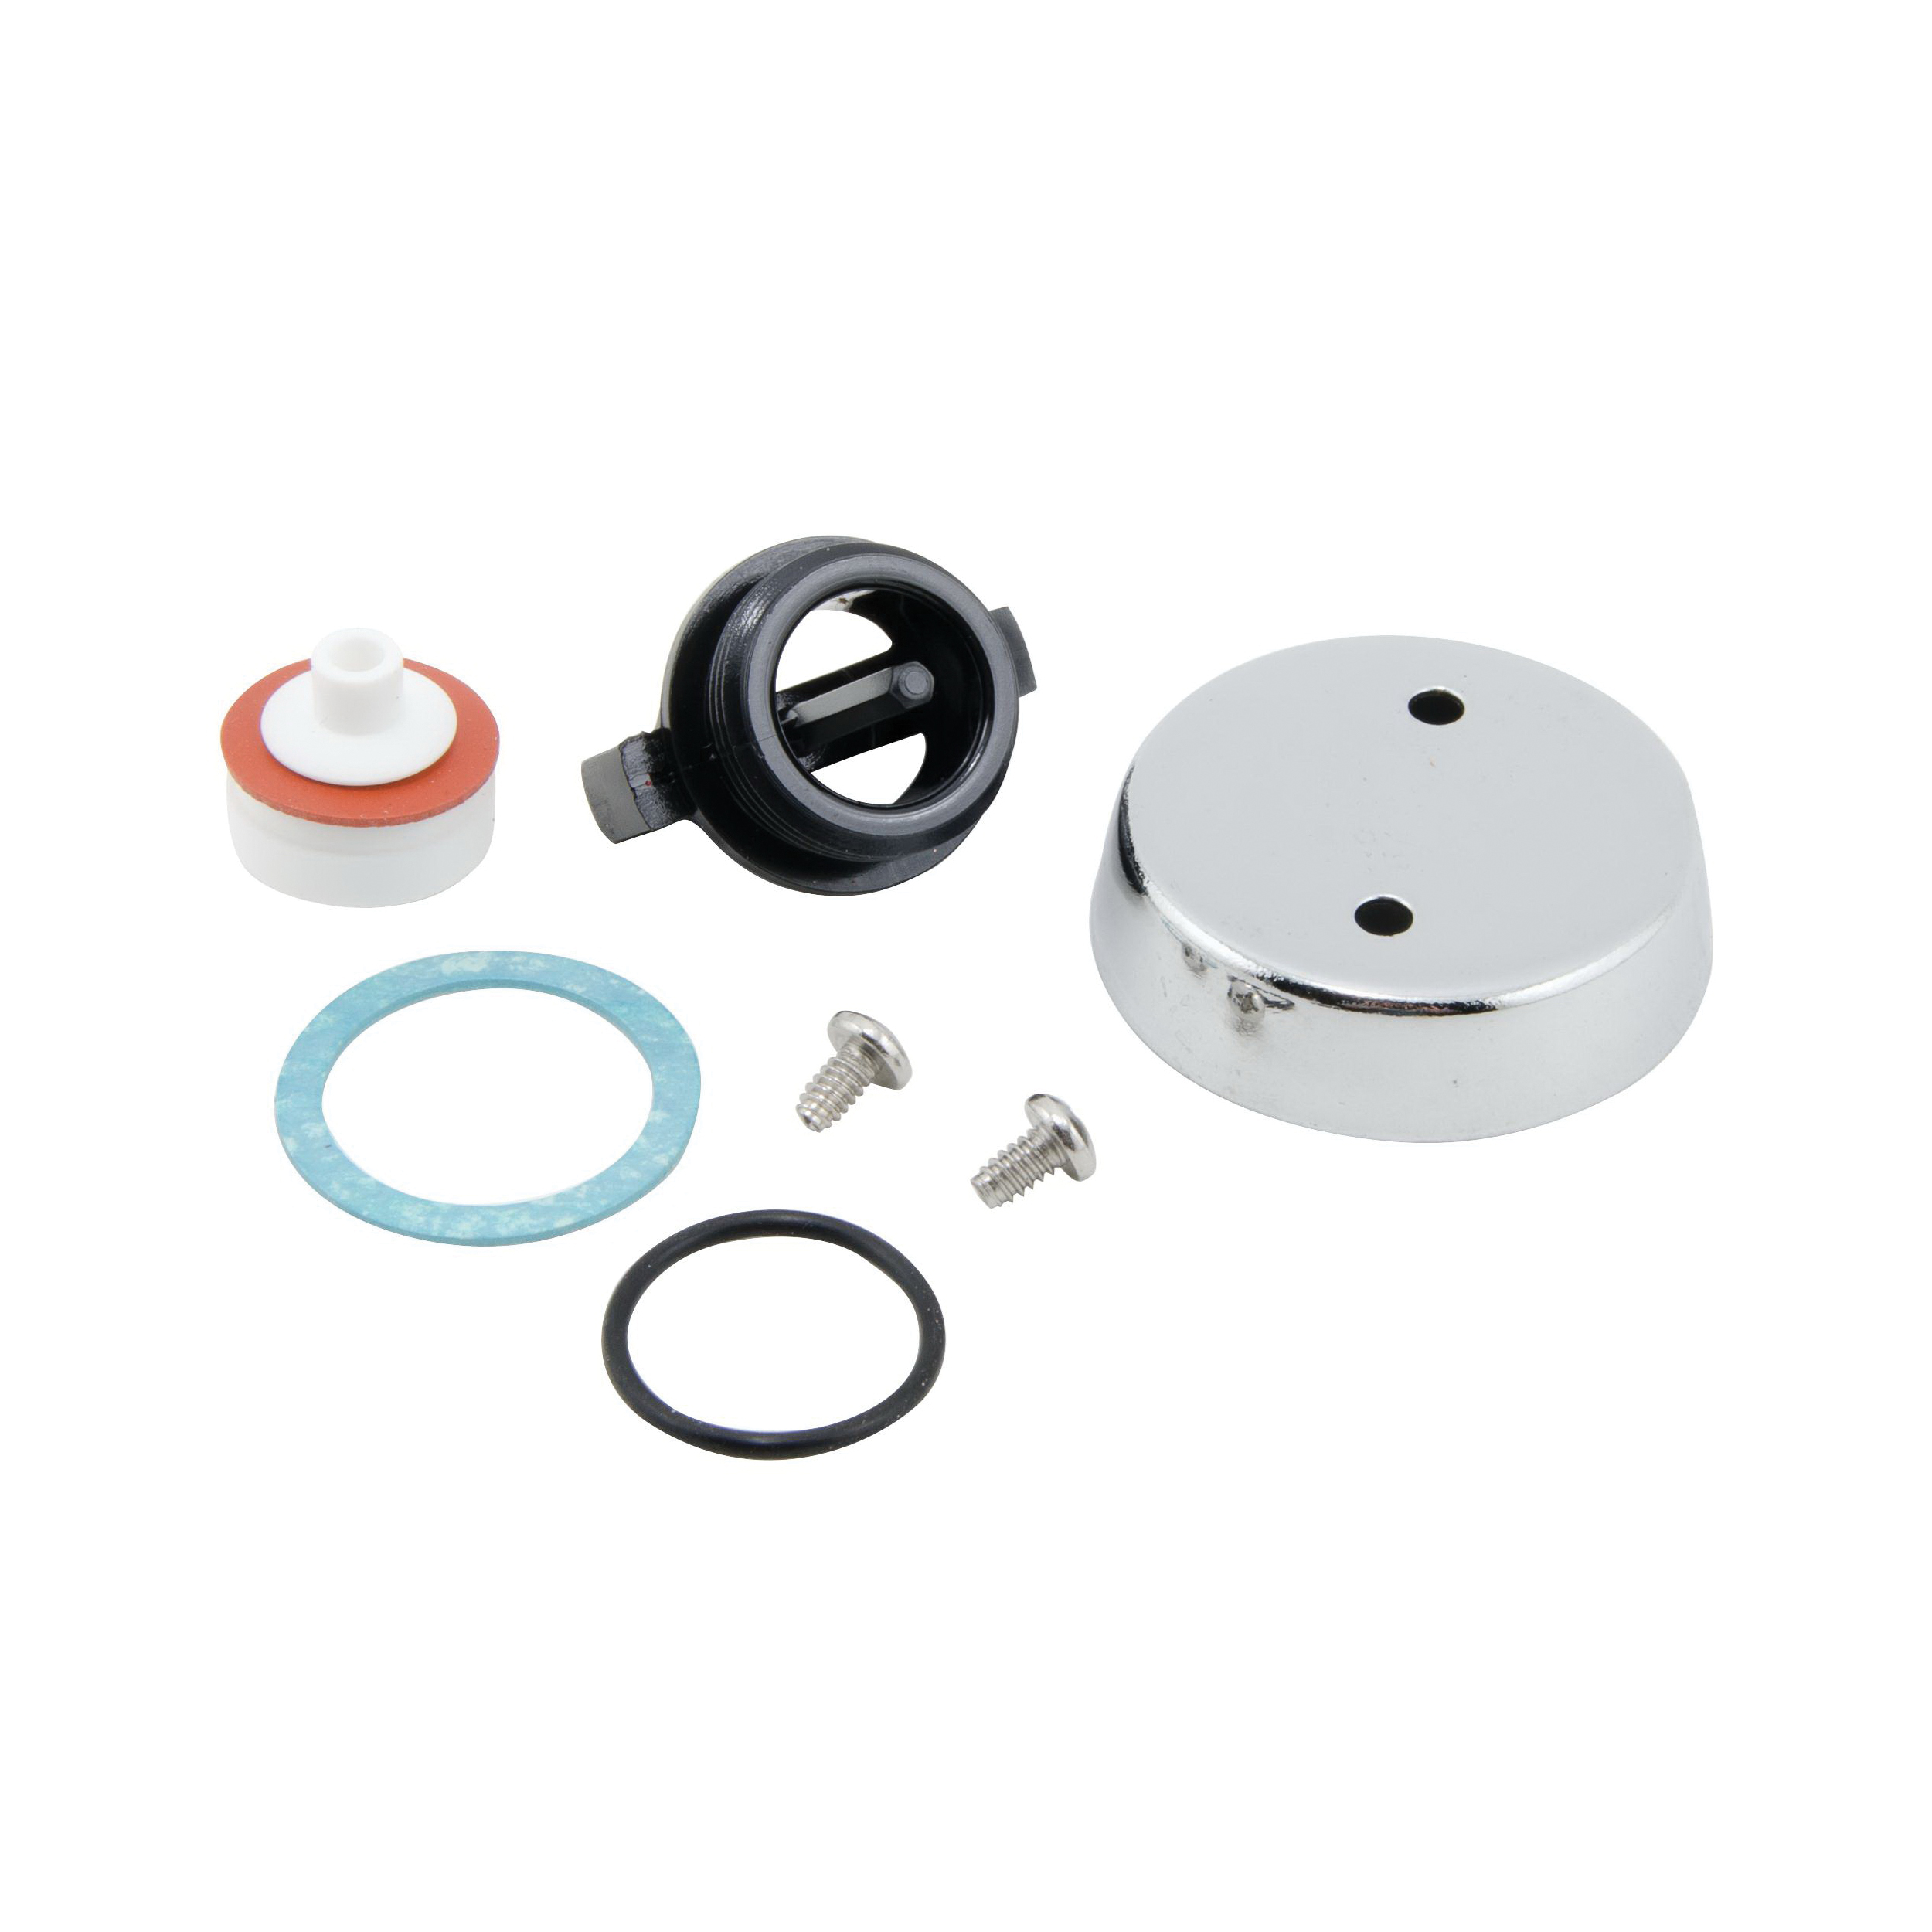 WATTS® 0887164 Total Repair Kit, For use with 288A Series 1/4 to 3/8 in Hot or Cold Water Anti-Siphon Vacuum Breakers